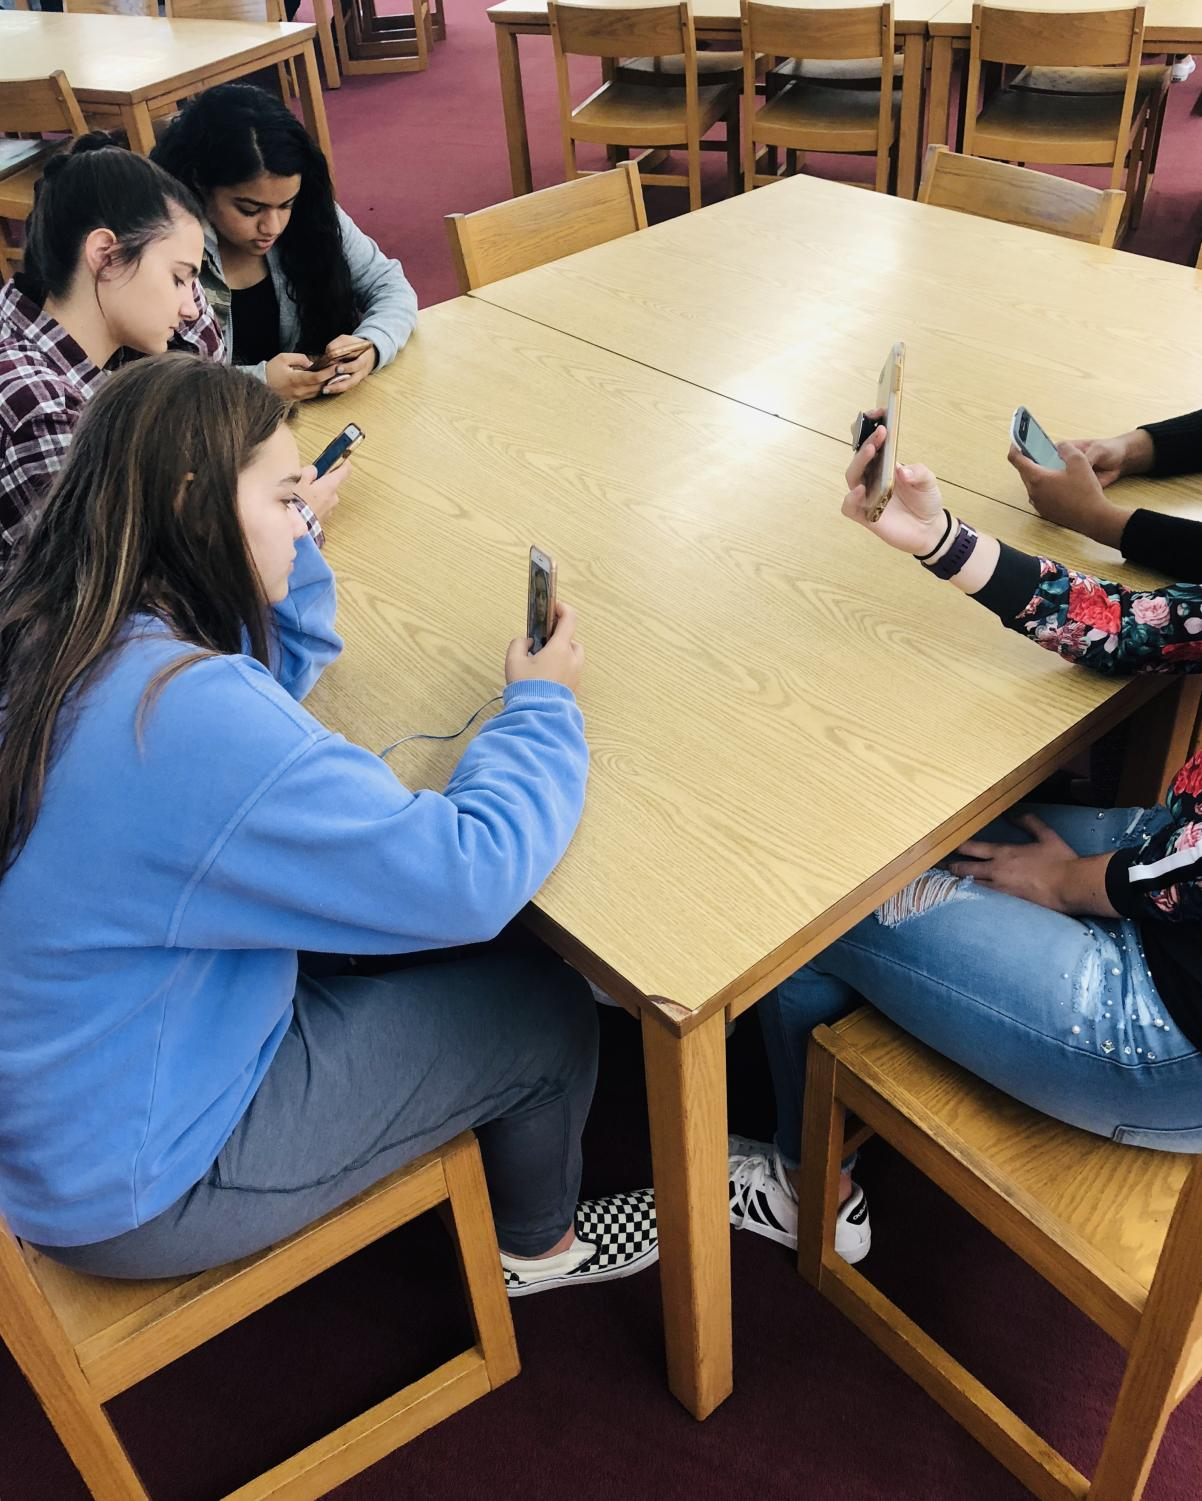 Students sitting on their phones instead of socializing.